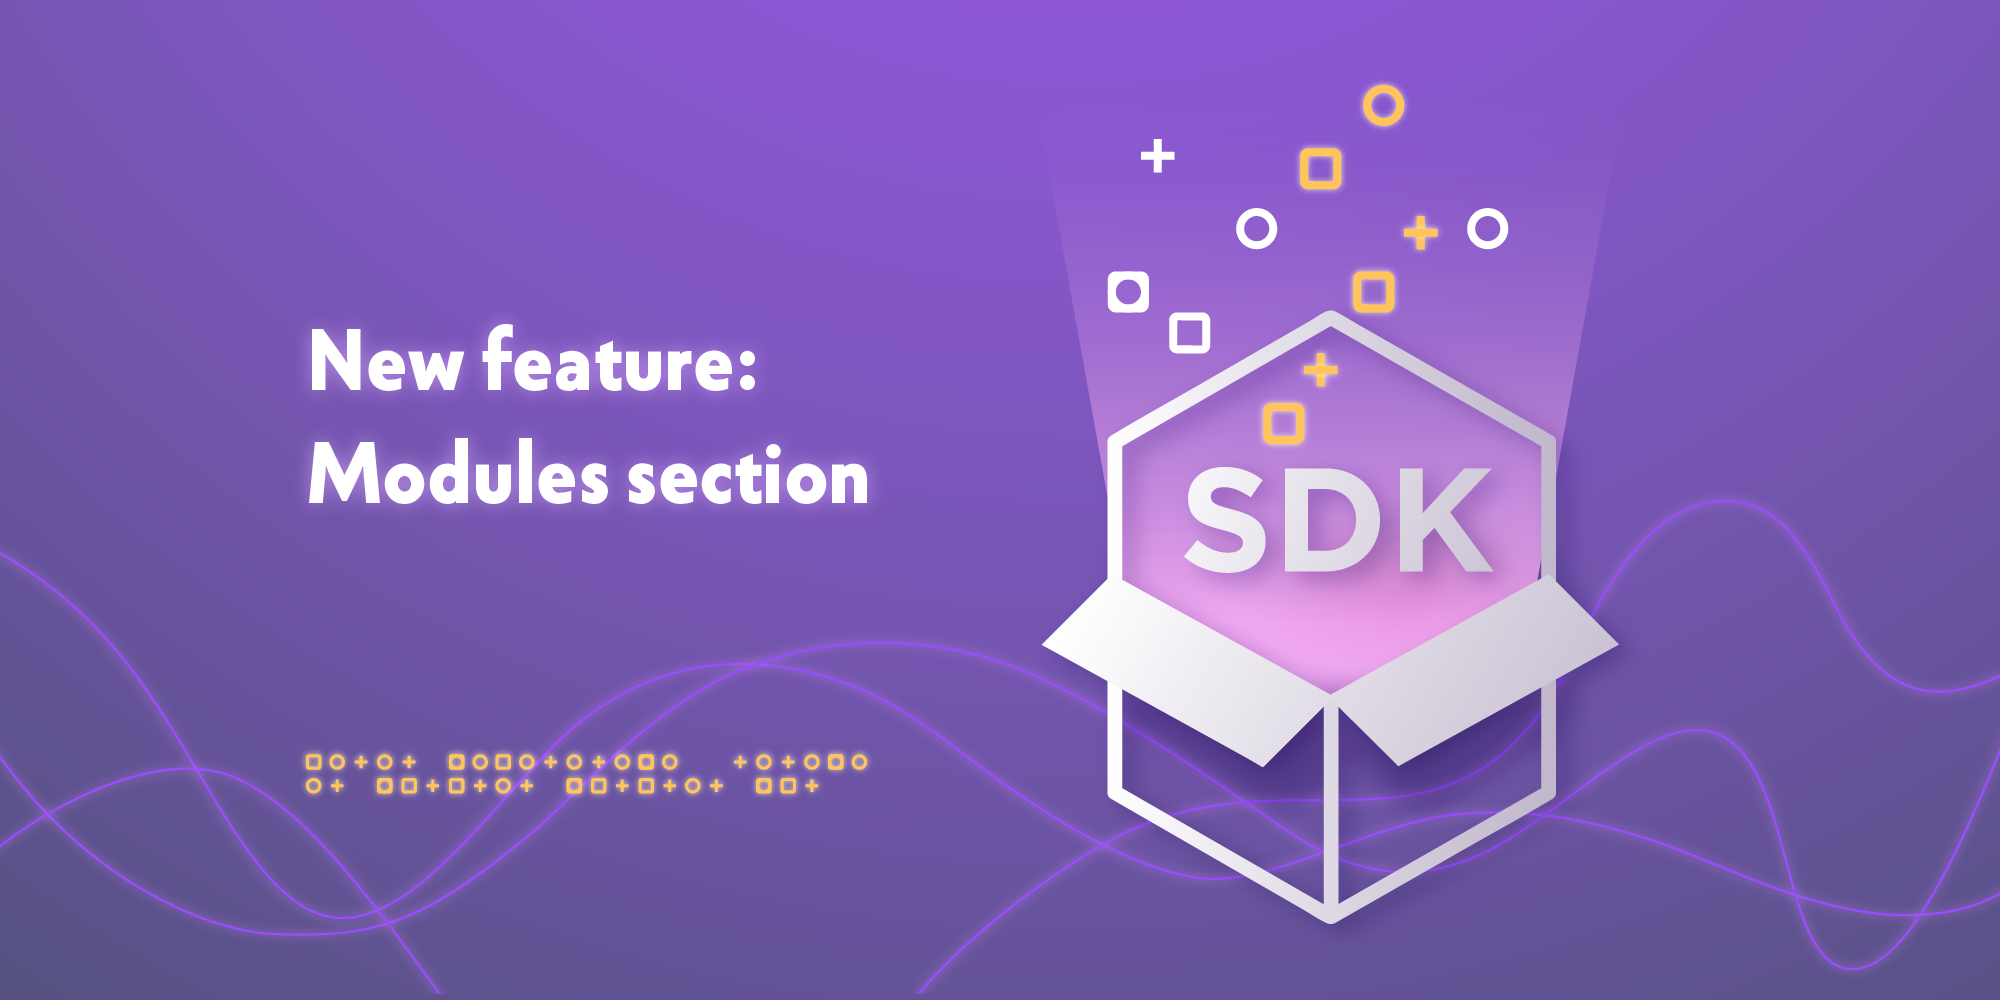 New feature: Modules section